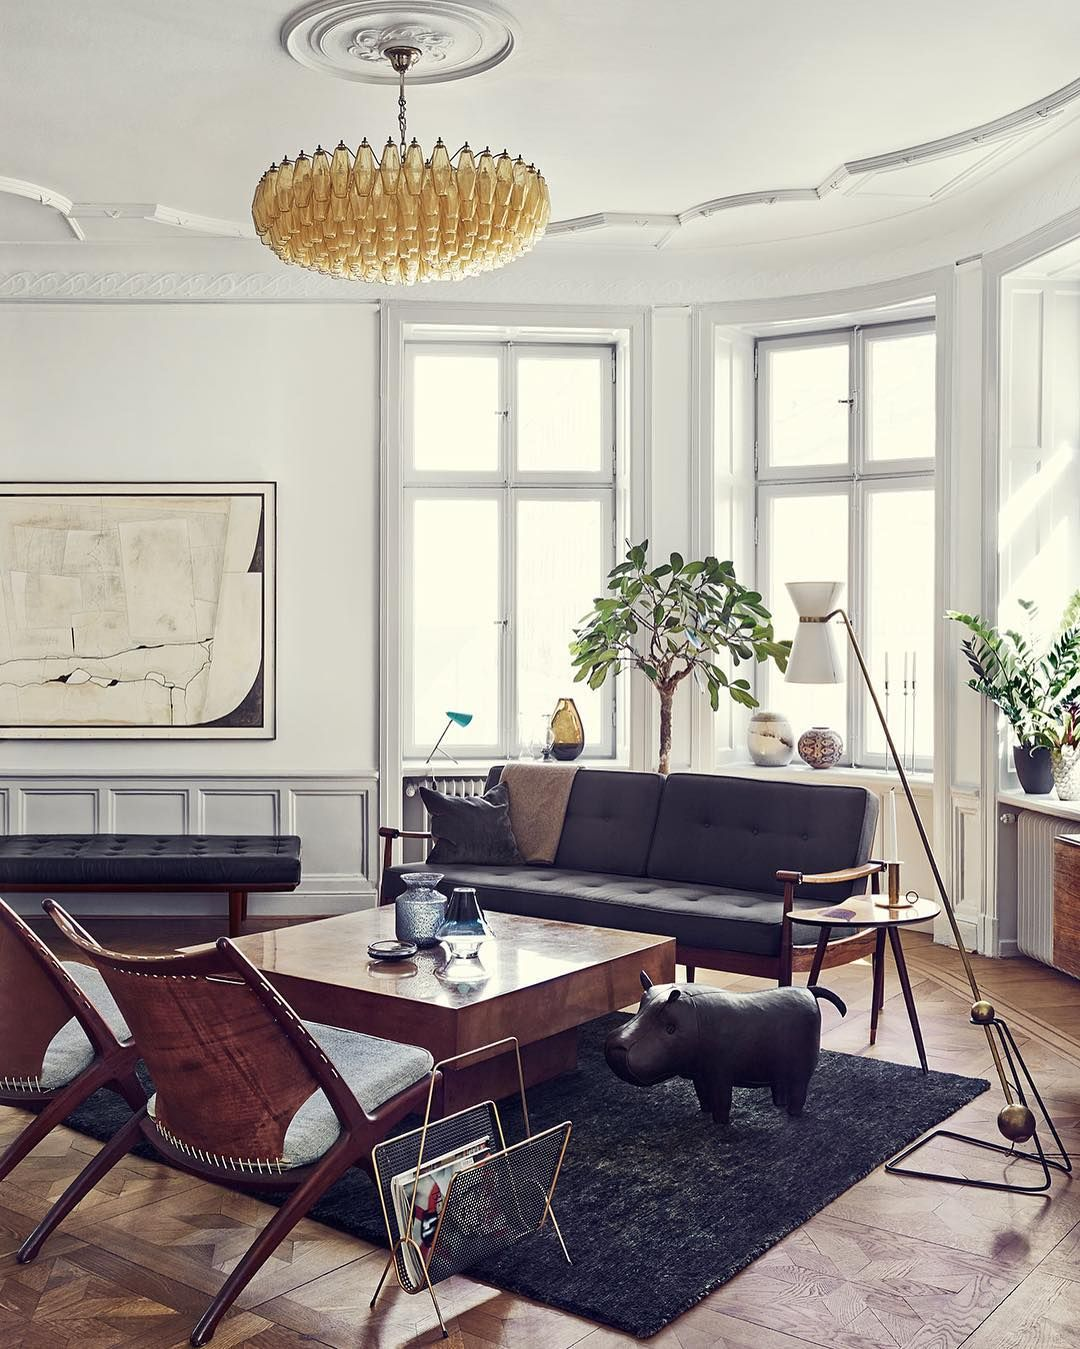 Home of prop stylist joanna lavén in stockholm she and her partner designed the space using a combination of modern mid century and traditional finds